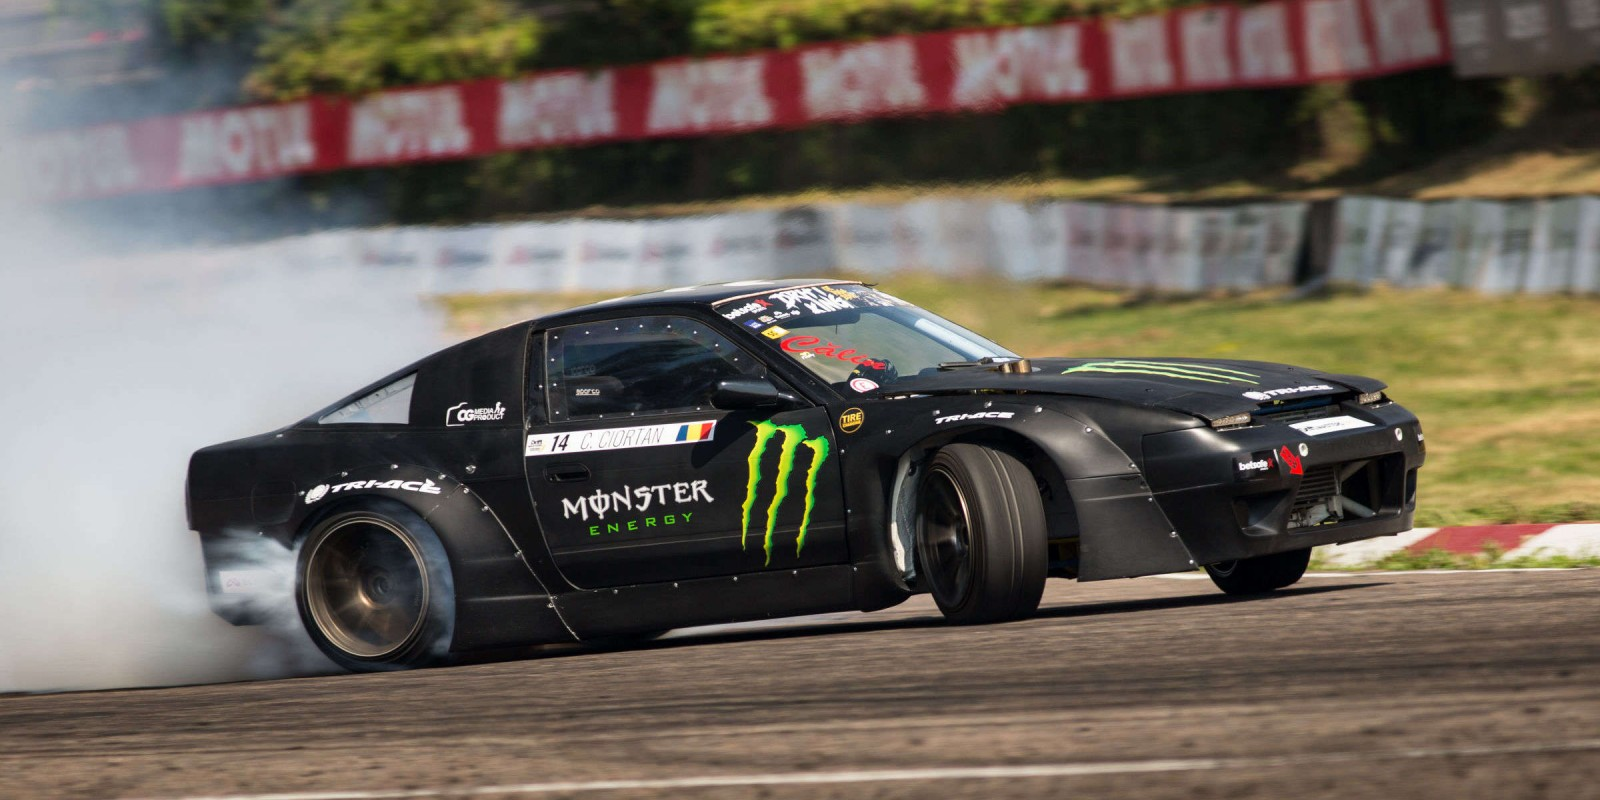 Images from round three of the 2018 Drift Masters Championship in Riga, Latvia